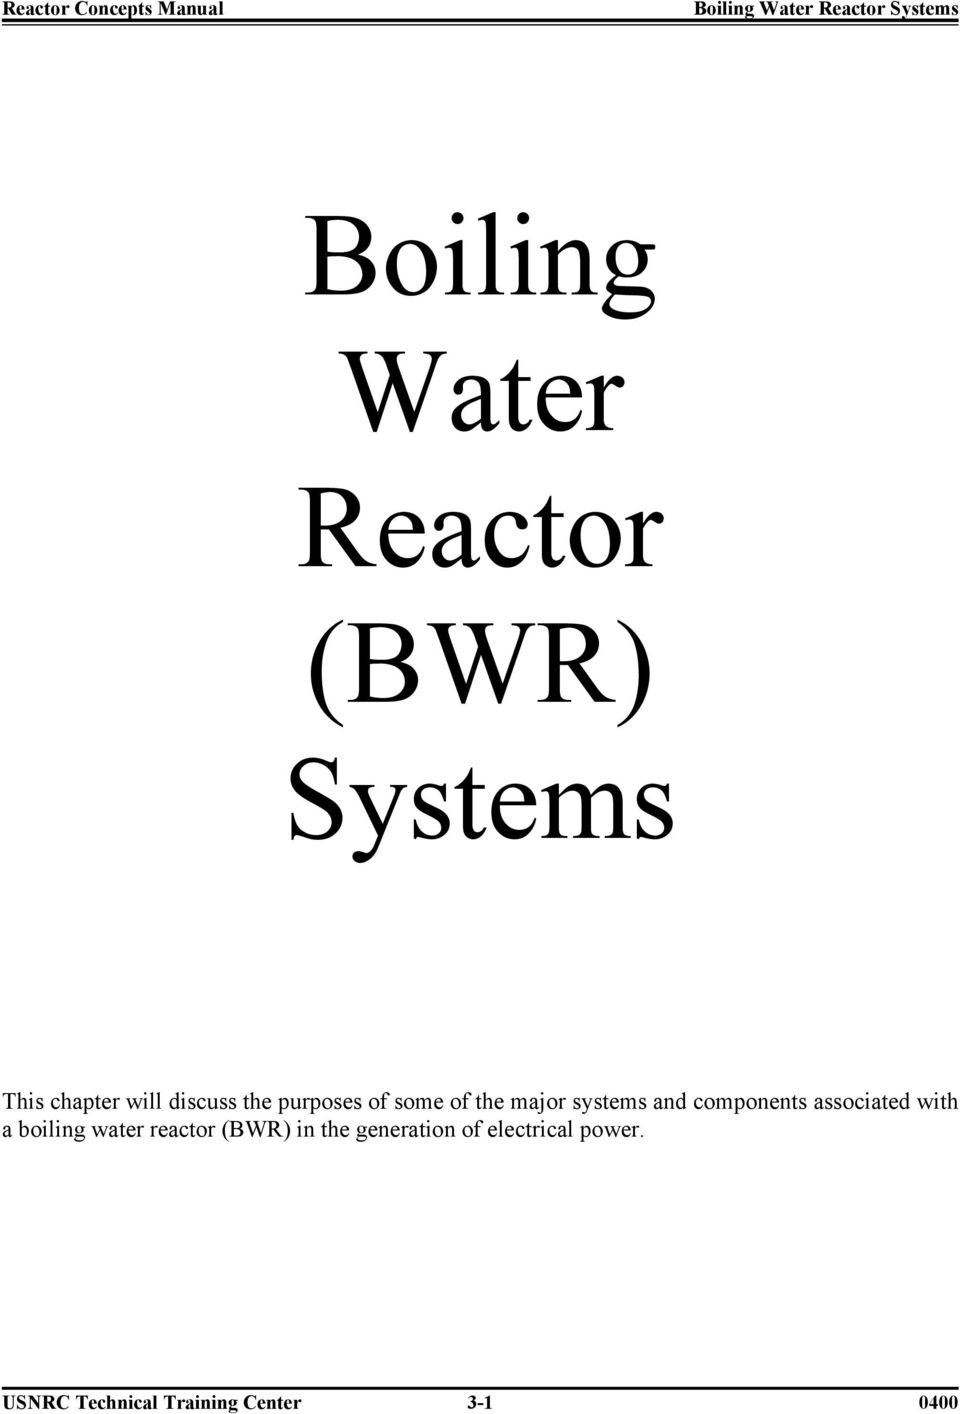 associated with a boiling water reactor (BWR) in the